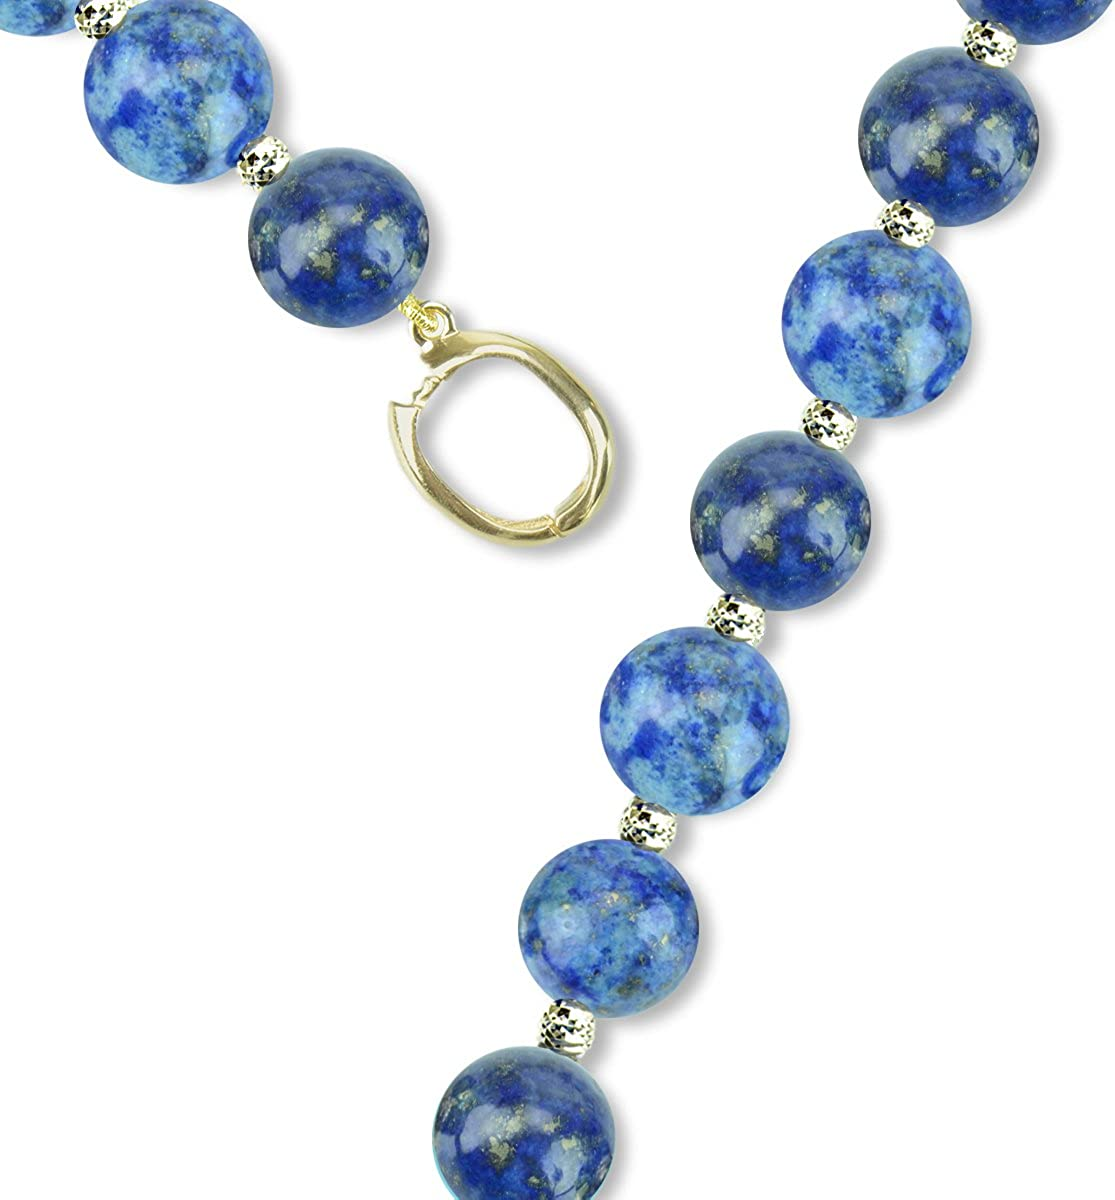 Simulated Gemstone Bead Y Necklace 14K Yellow Gold Jewelry for Women 8mm 21 inch